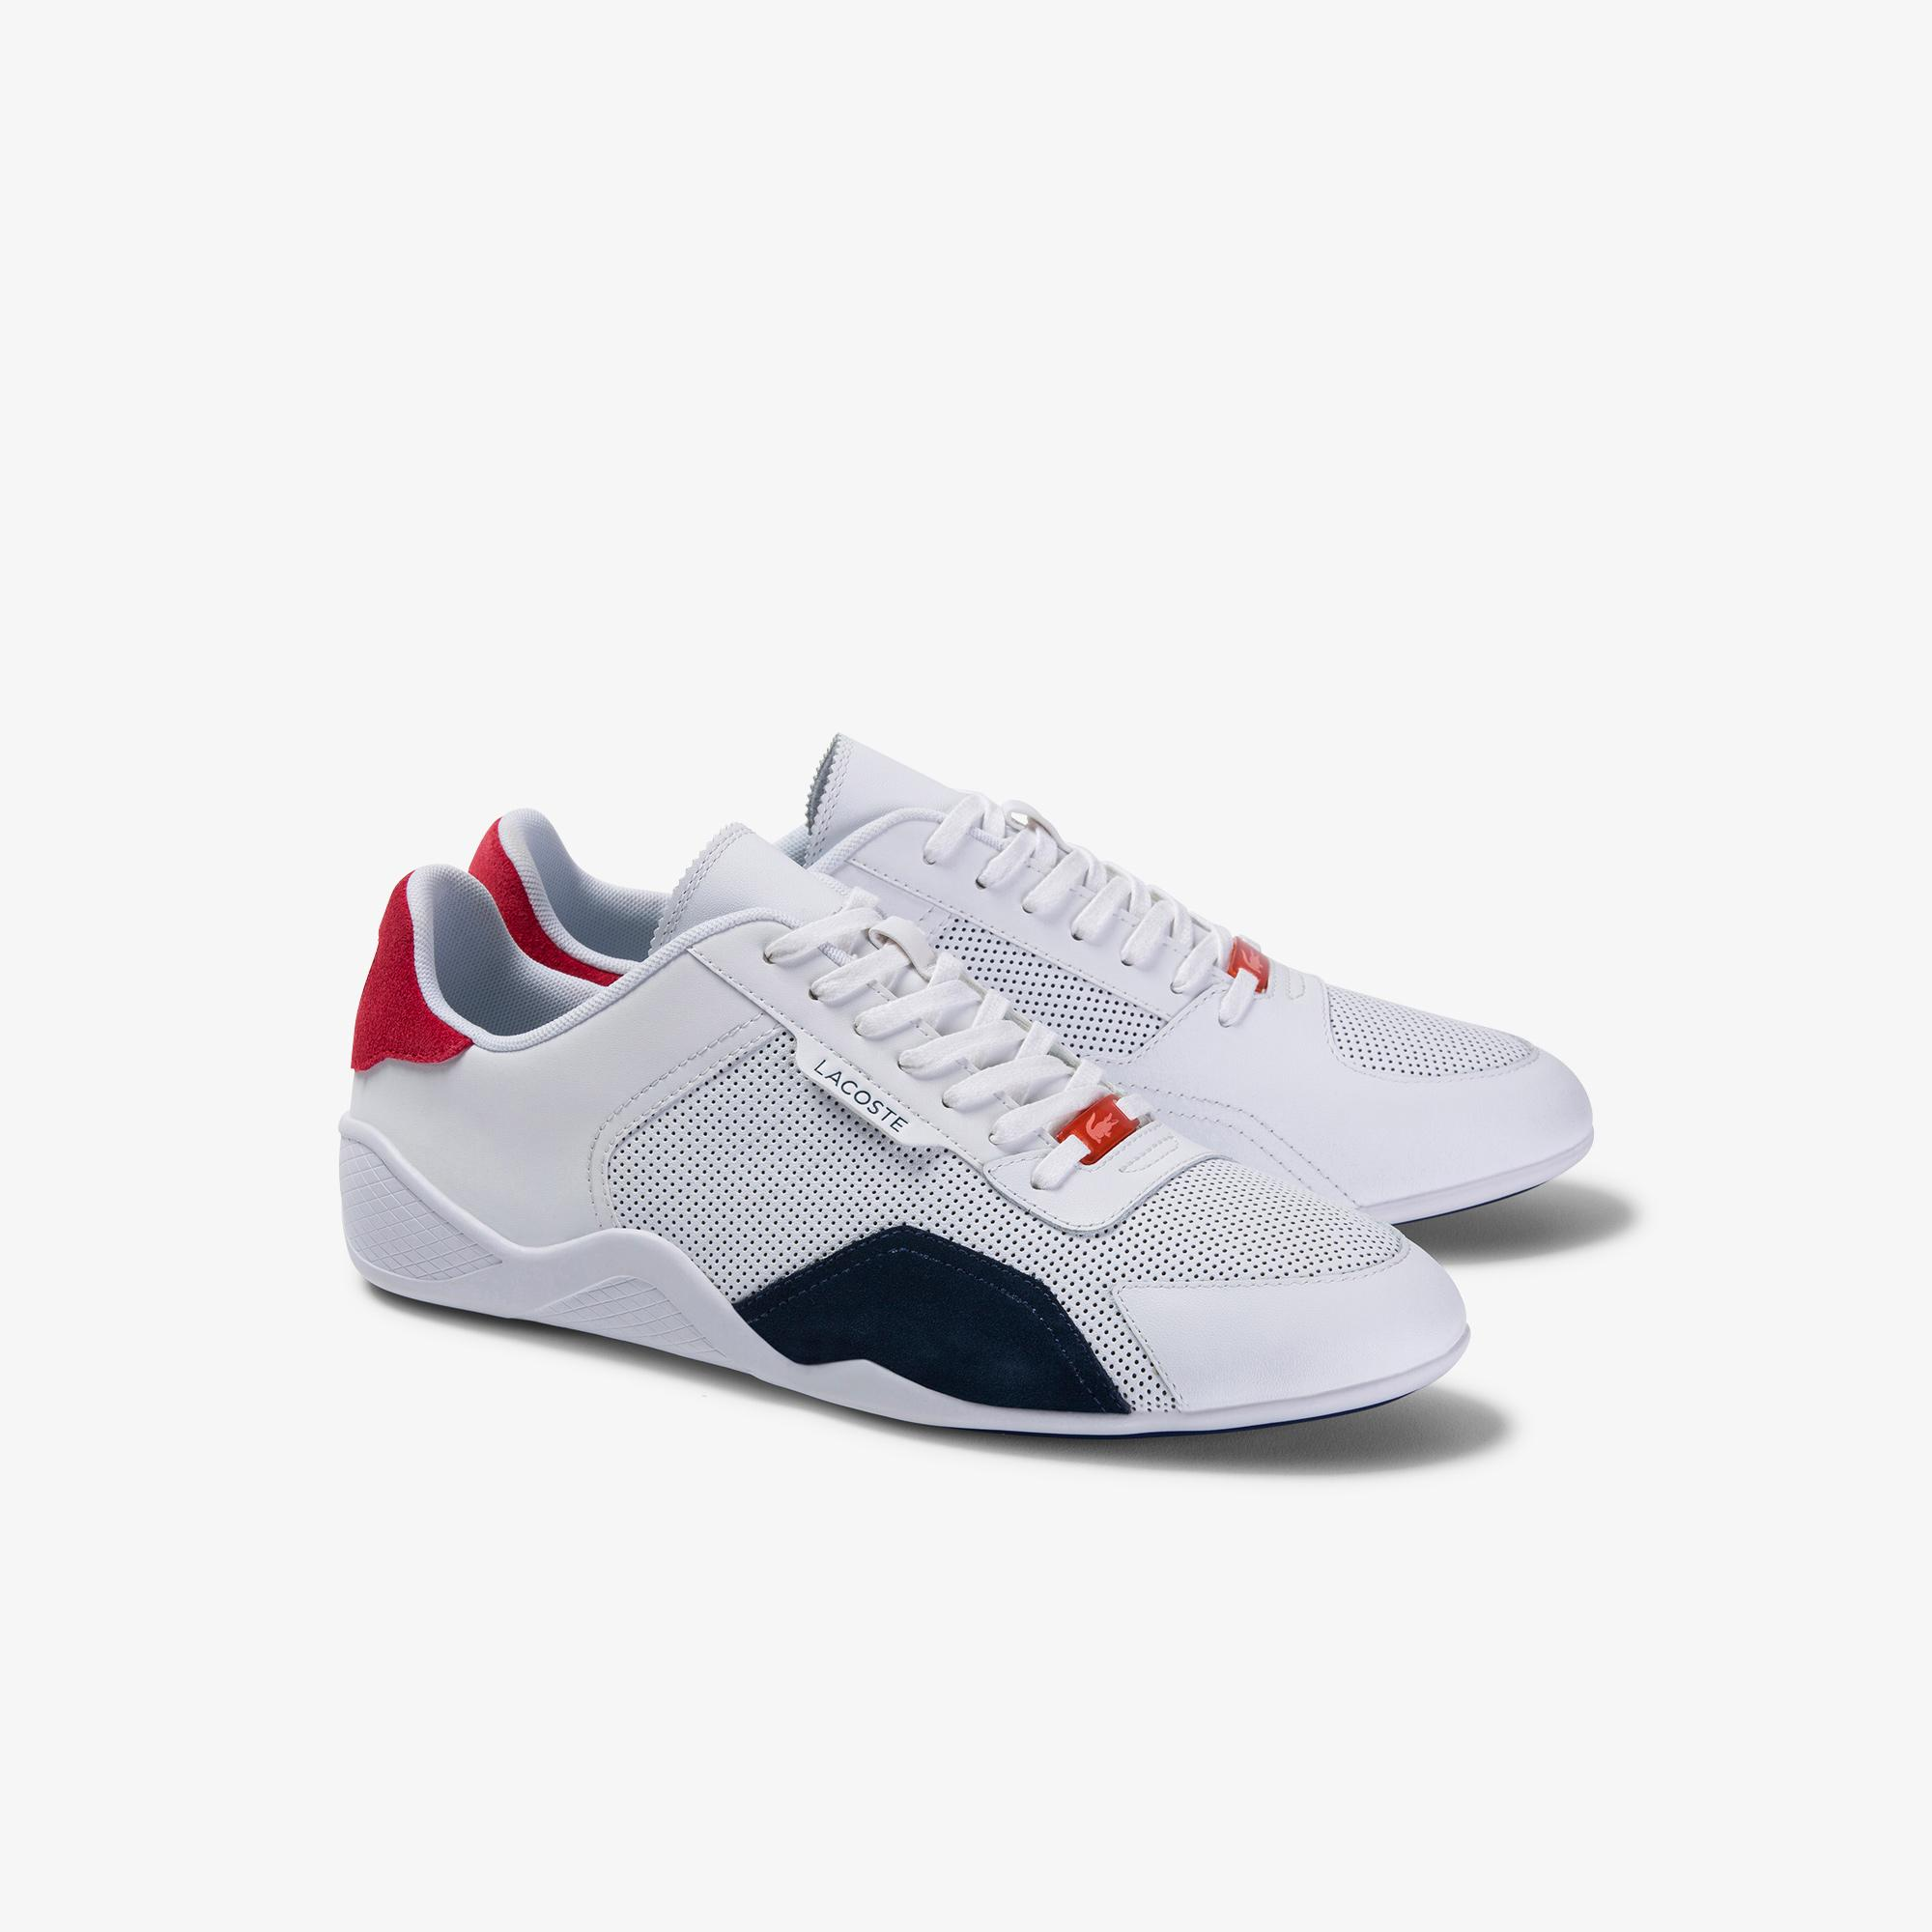 Lacoste Hapona 120 3 Men's Sneakers